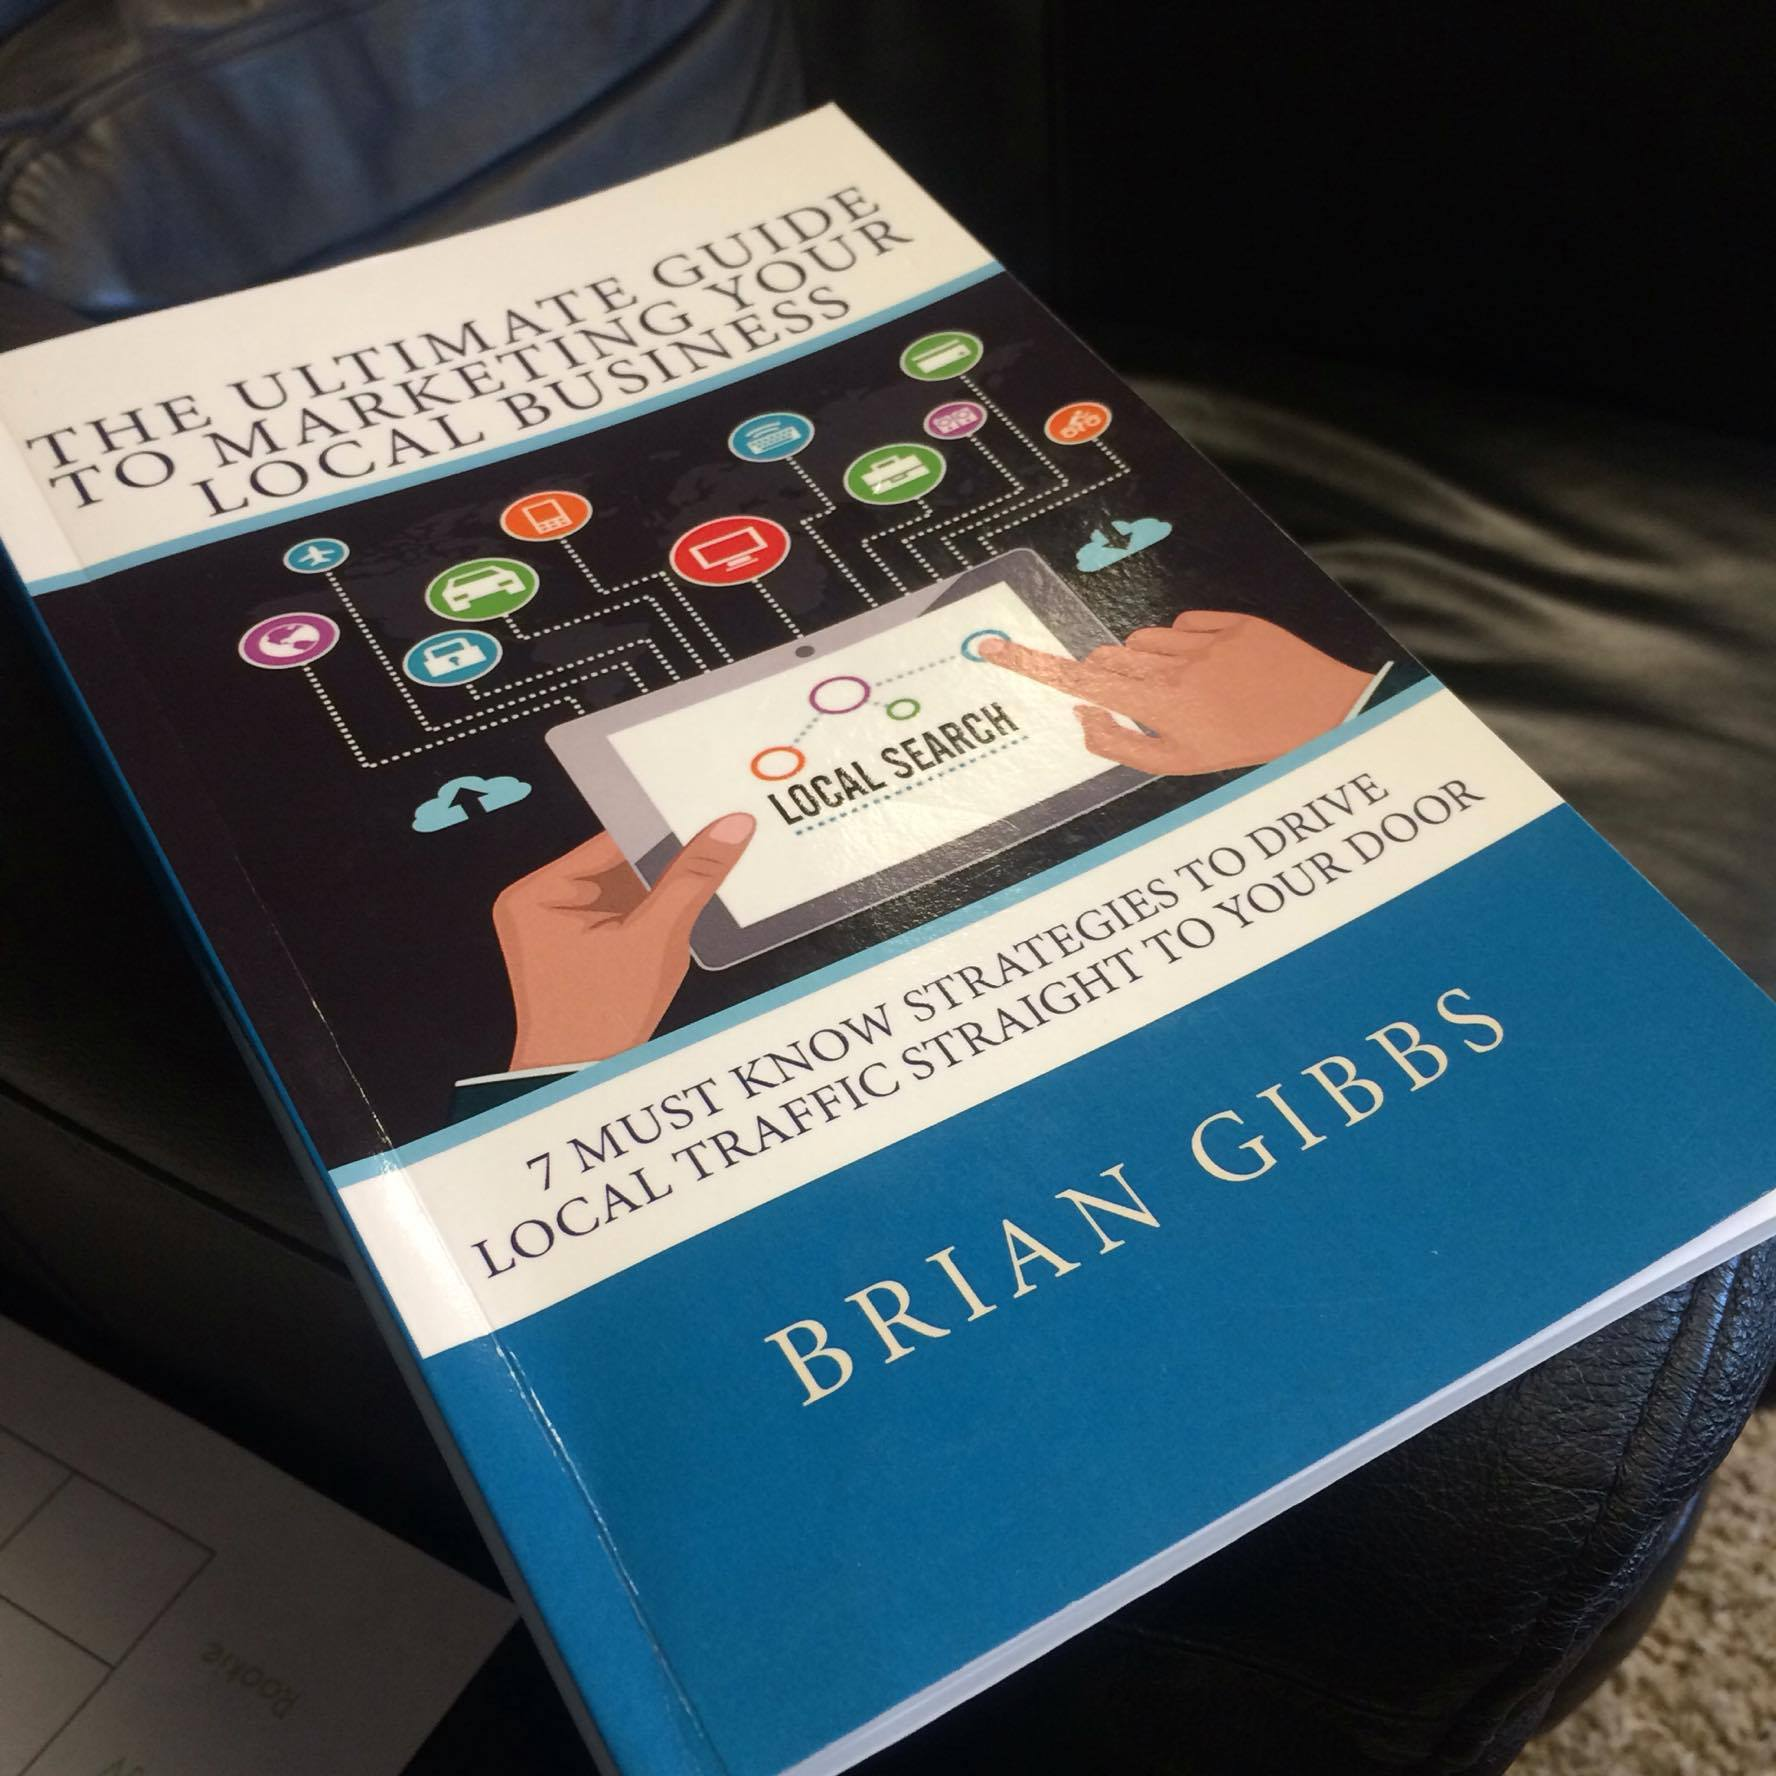 Brian gibbs book The ultimate guide to marketing a local business